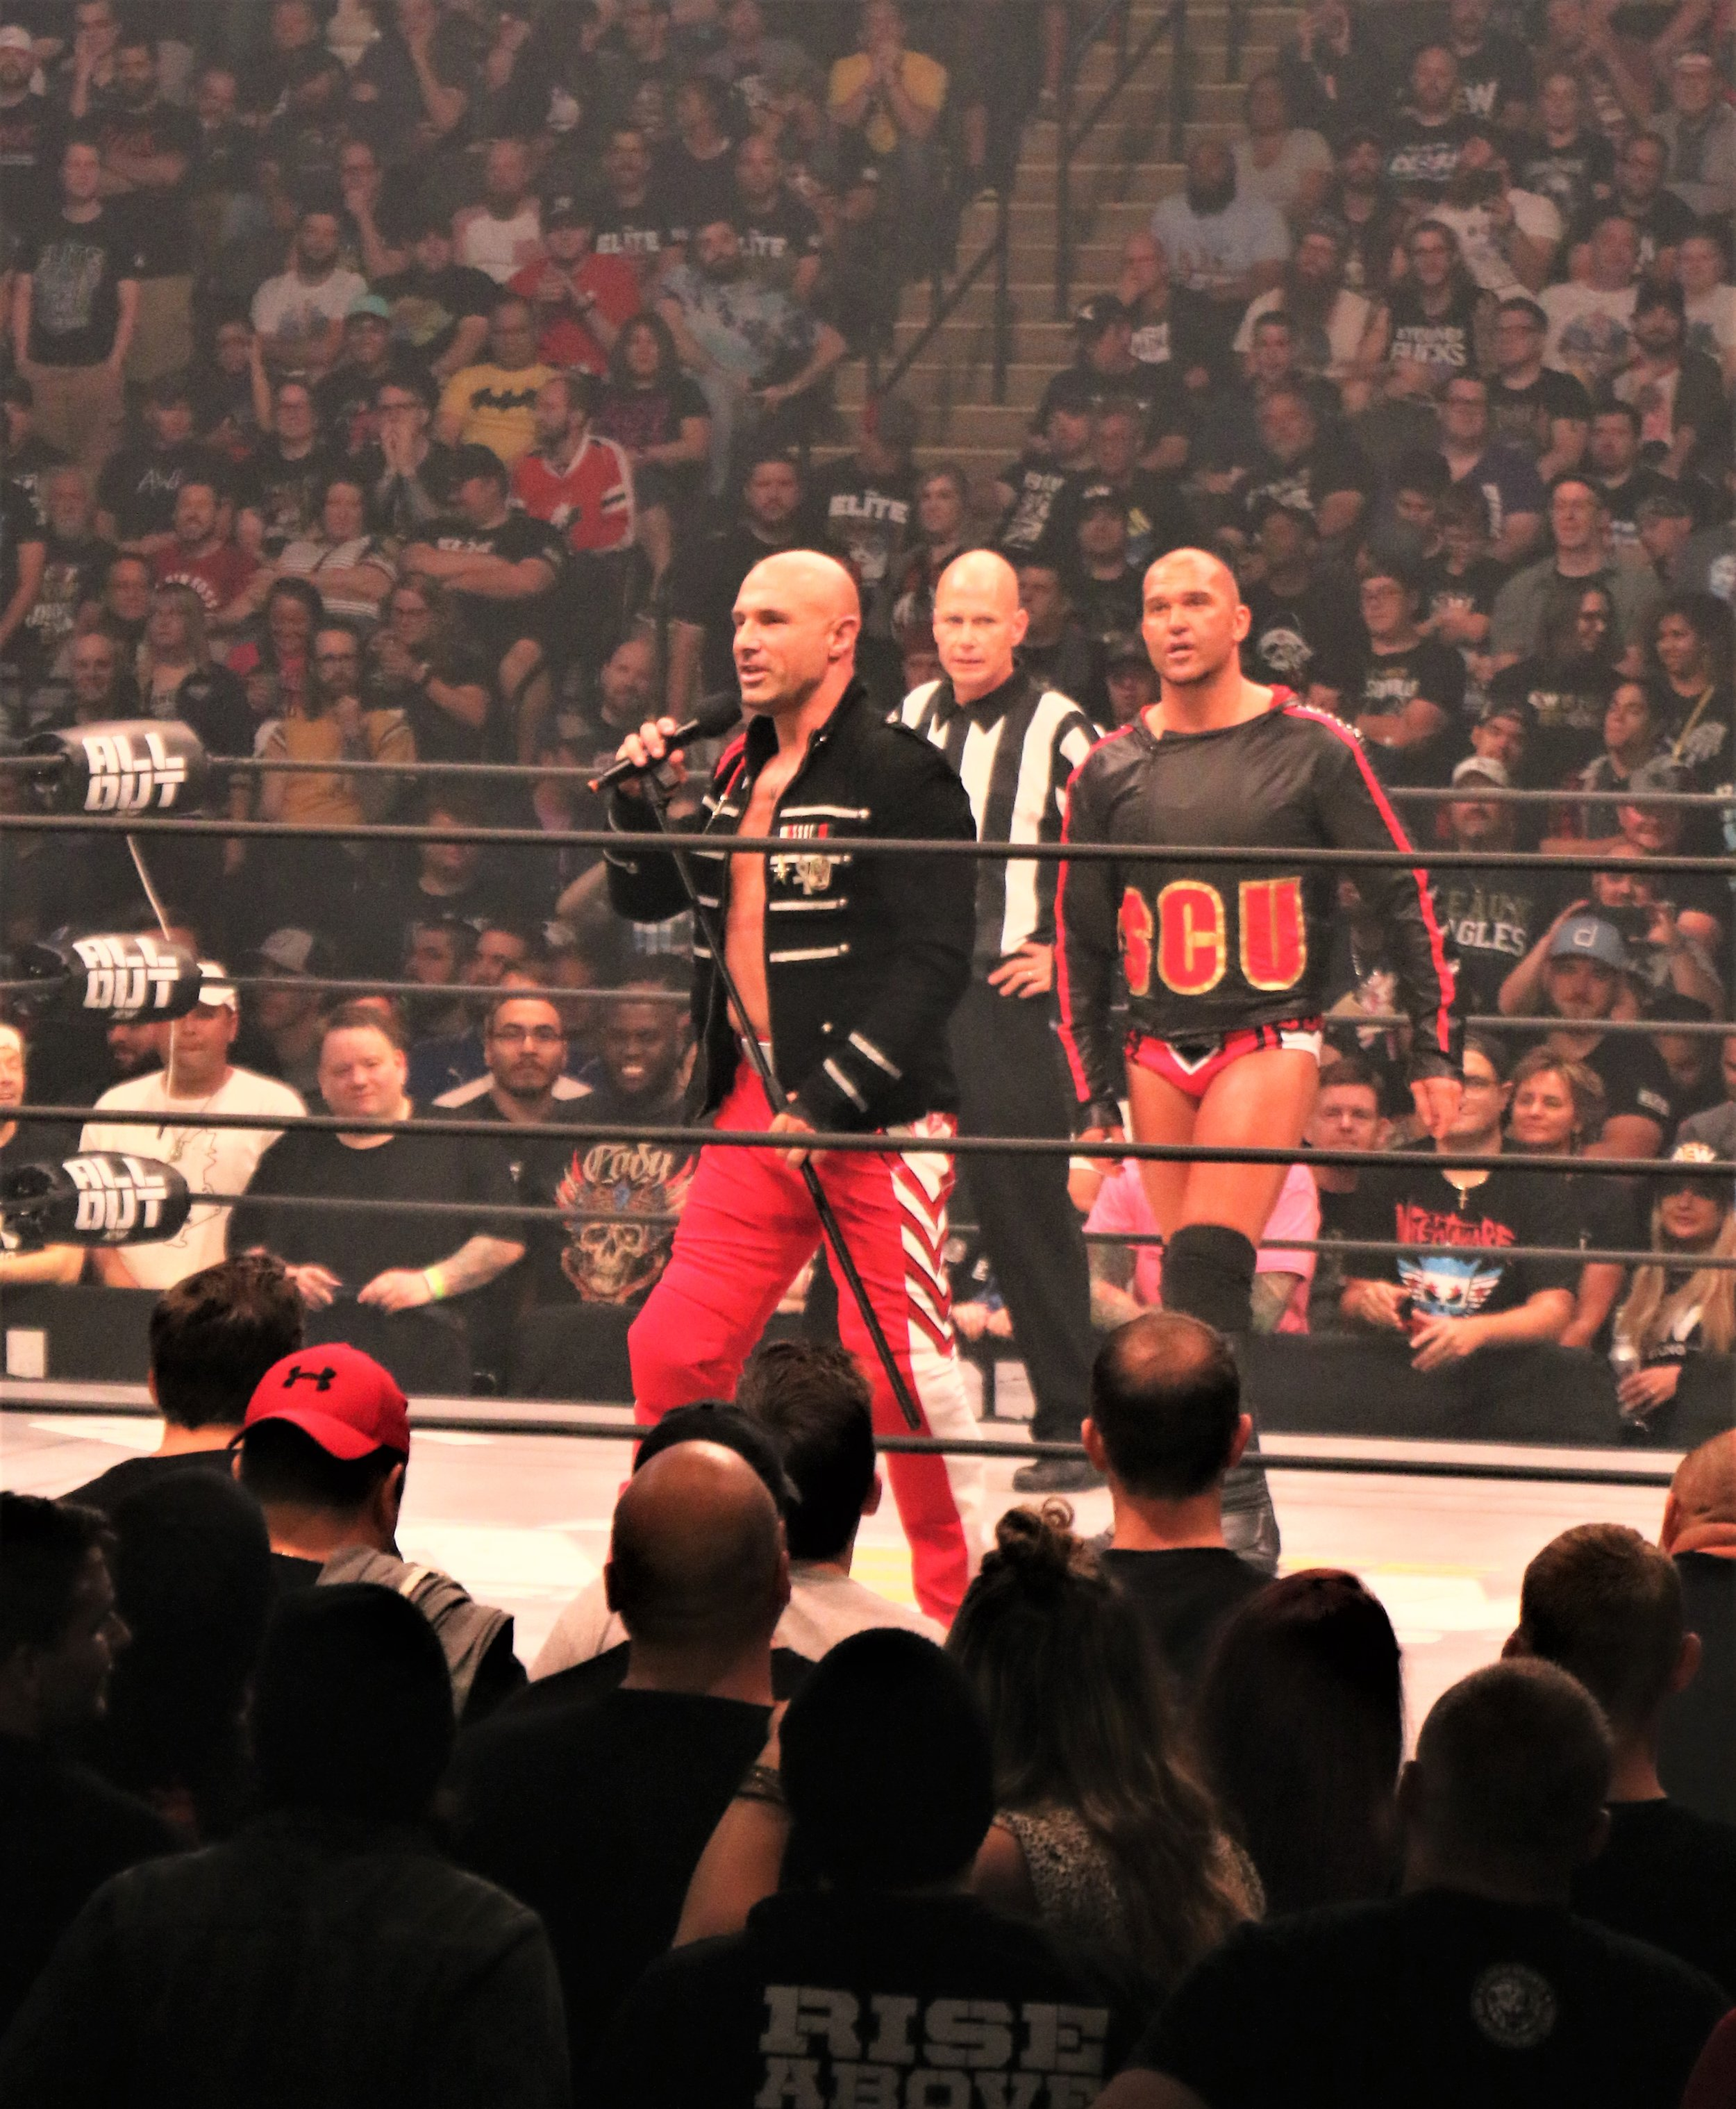 Christopher Daniels, left, and Frankie Kazarian of SCU before the six-man tag team match.